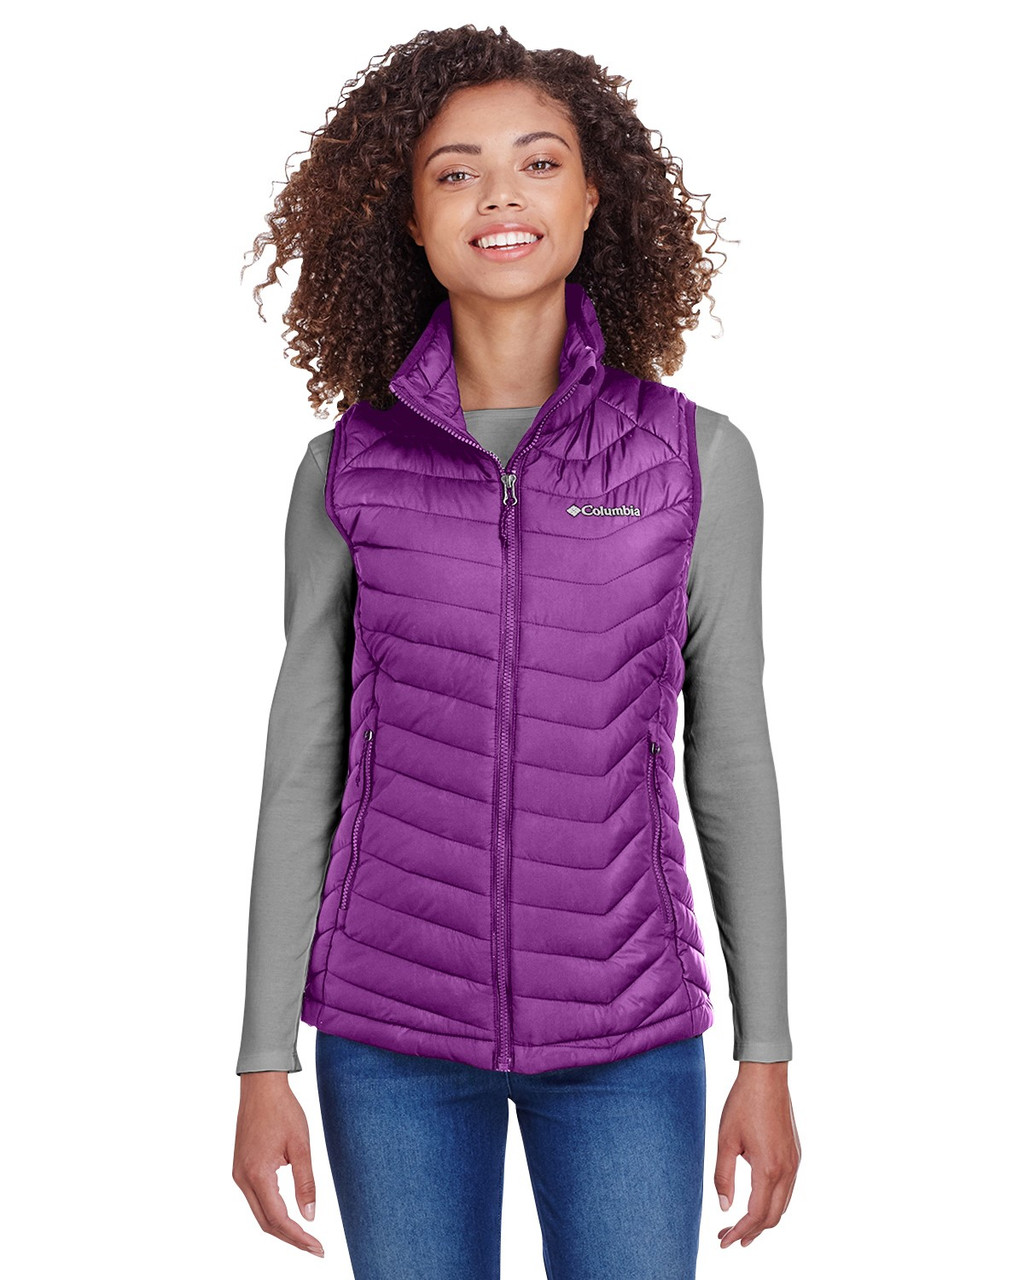 Wild Iris - 1757411 Columbia Ladies' Powder Lite Vest | BlankClothing.ca